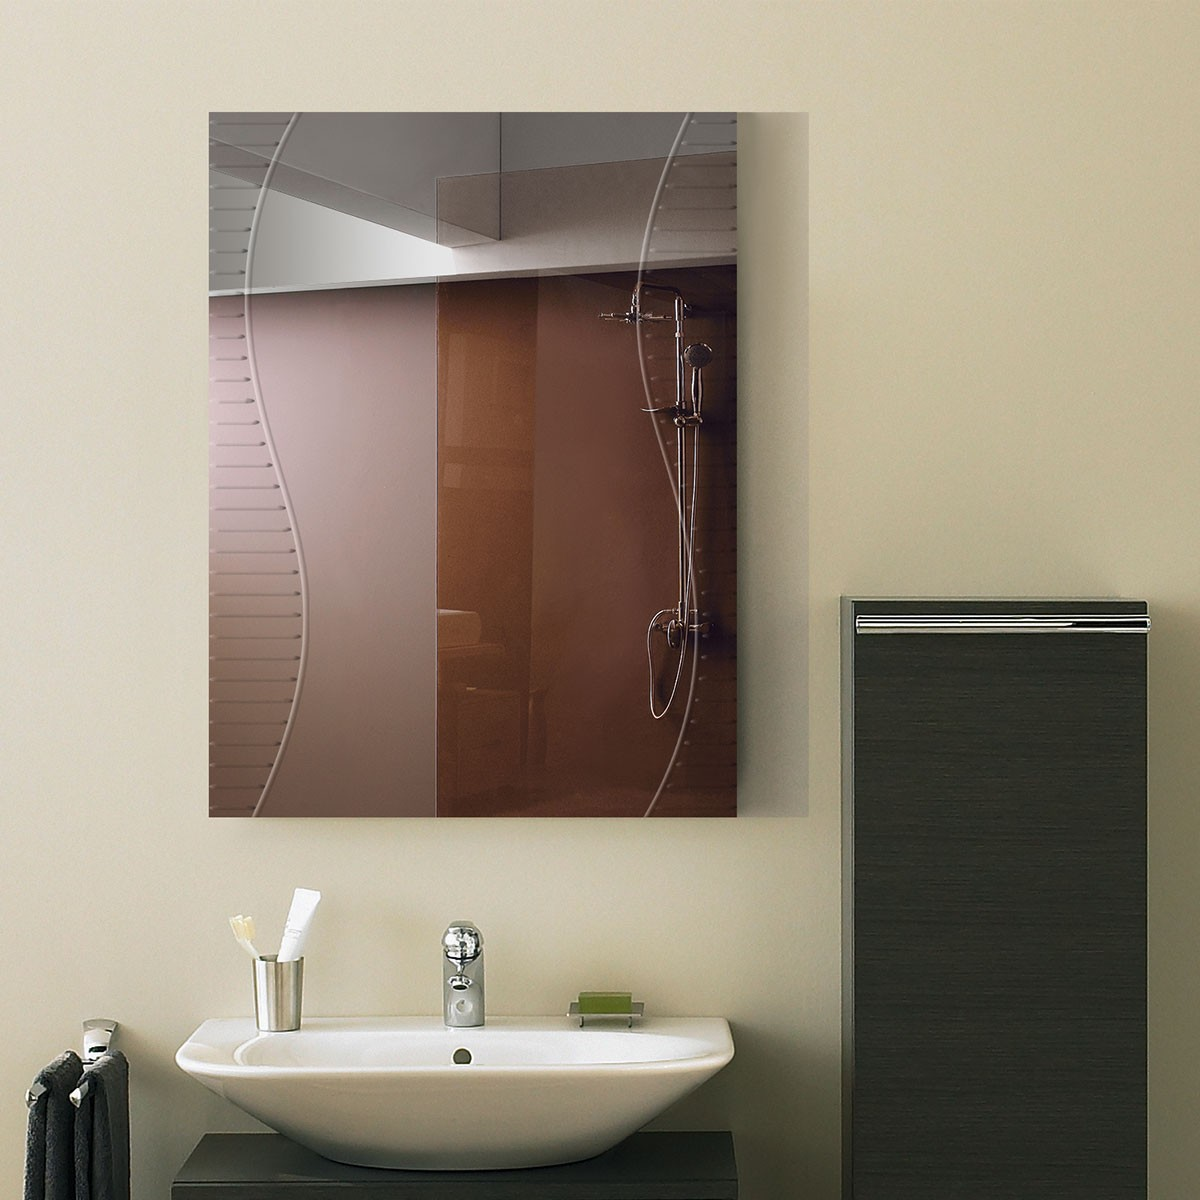 Charmant 24 X 18 In. Wall Mounted Rectangle Bathroom Mirror (DK OD